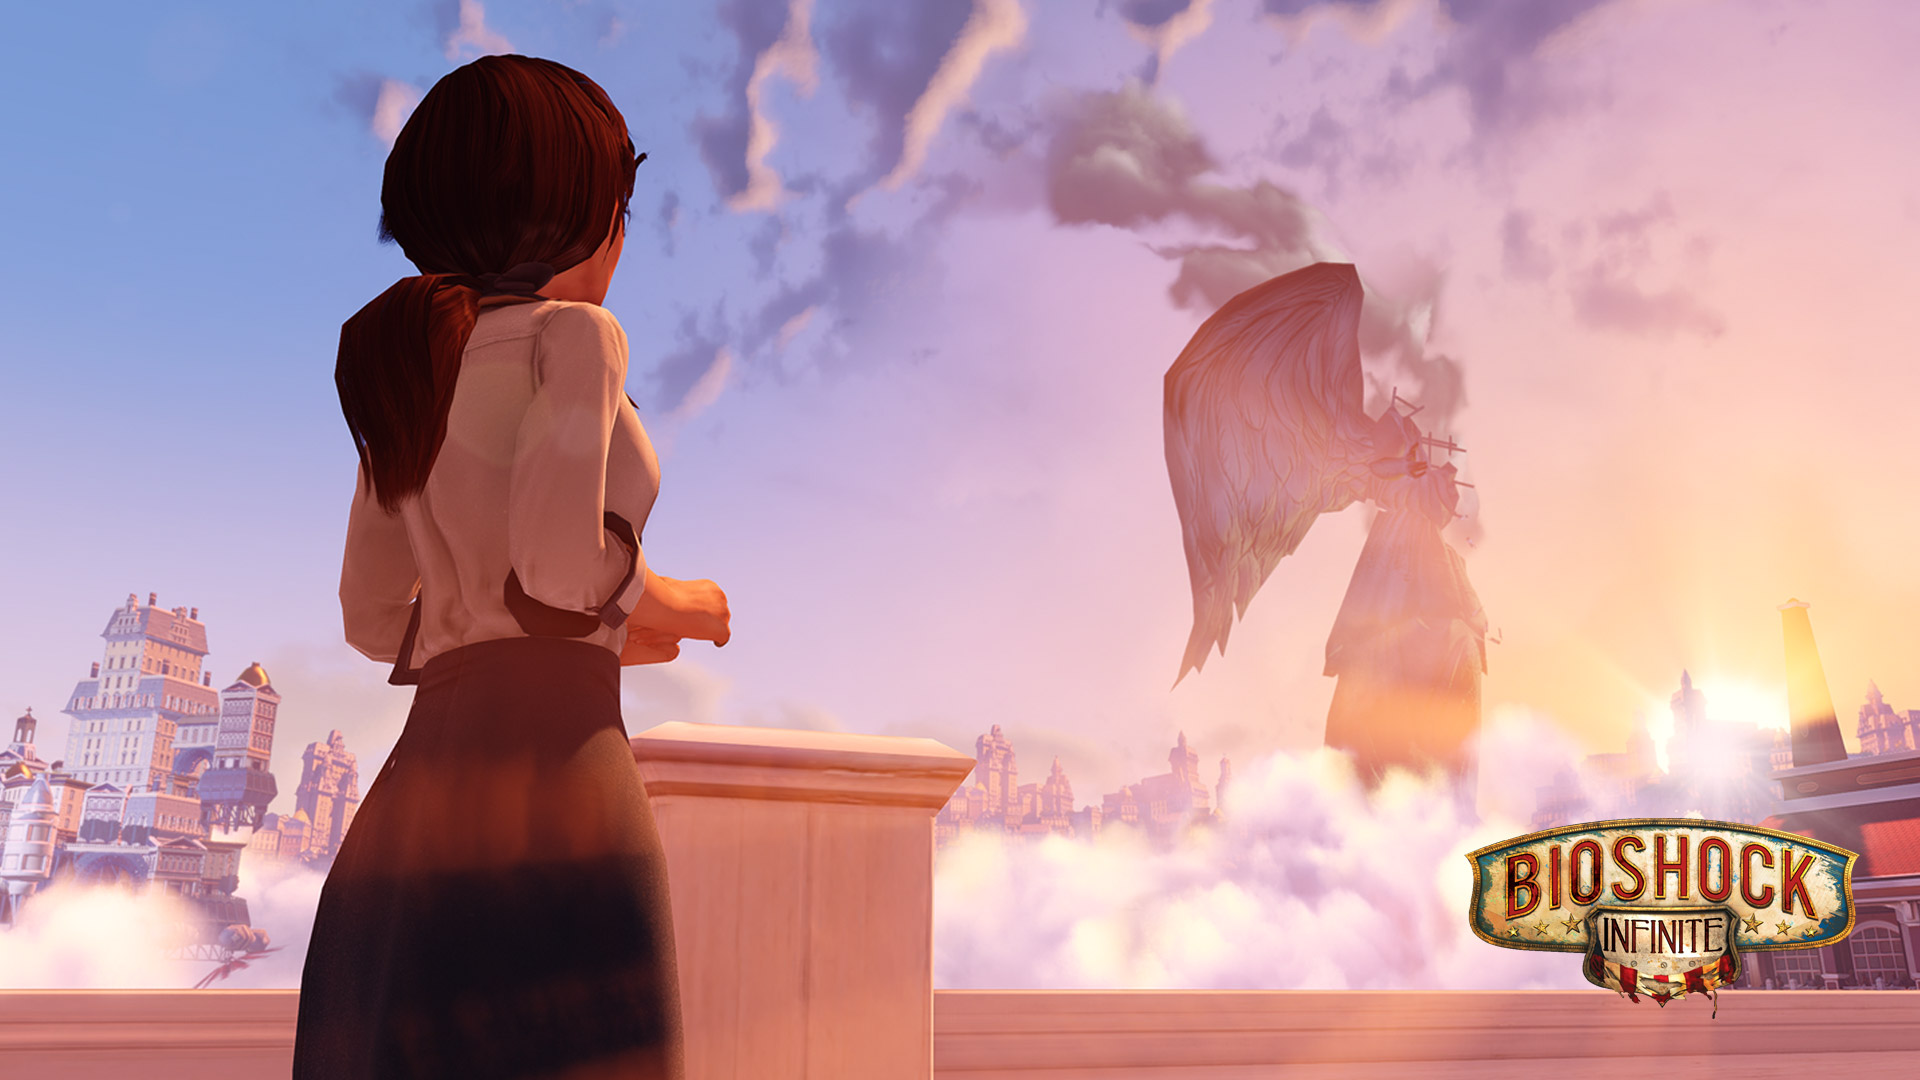 Bioshock Infinite Wallpaper in 1920x1080